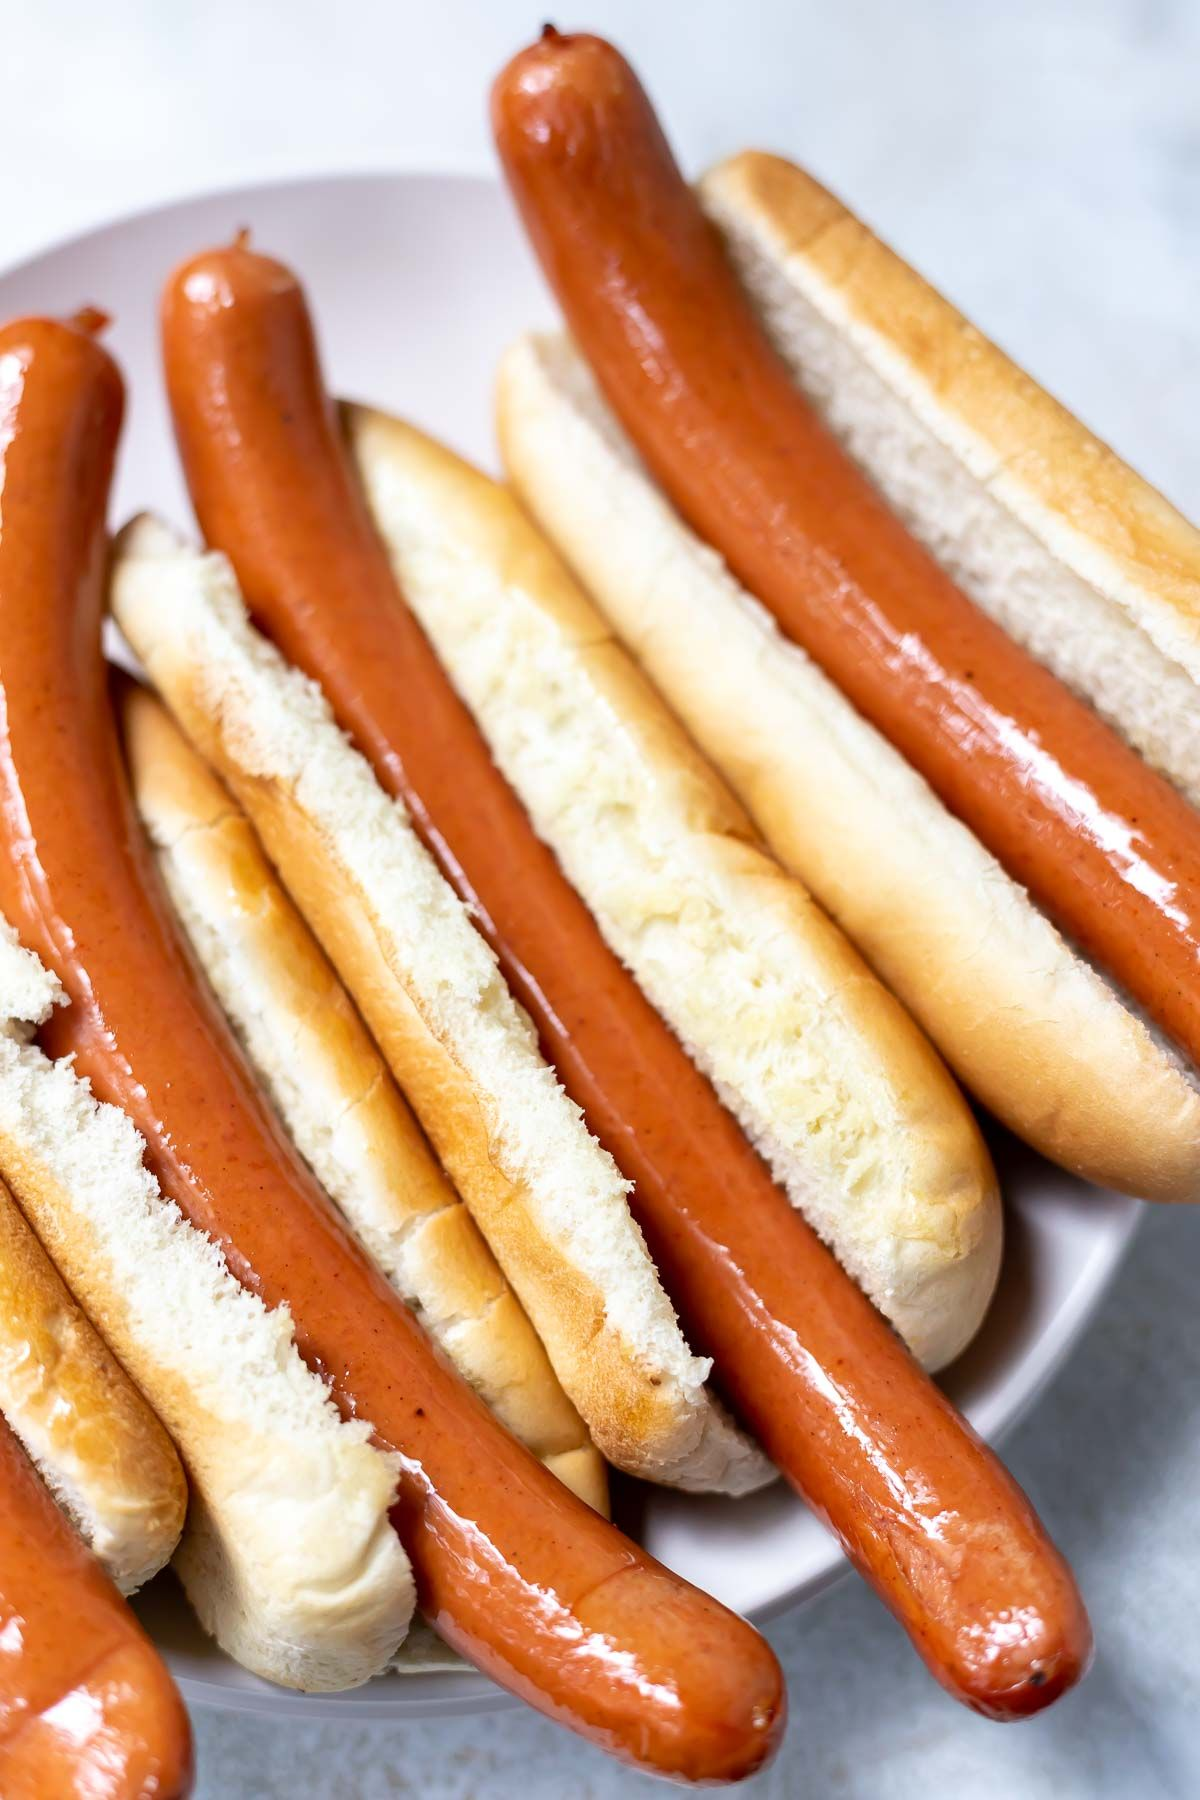 Air Fryer Hot Dogs Recipe (With images) Air fryer